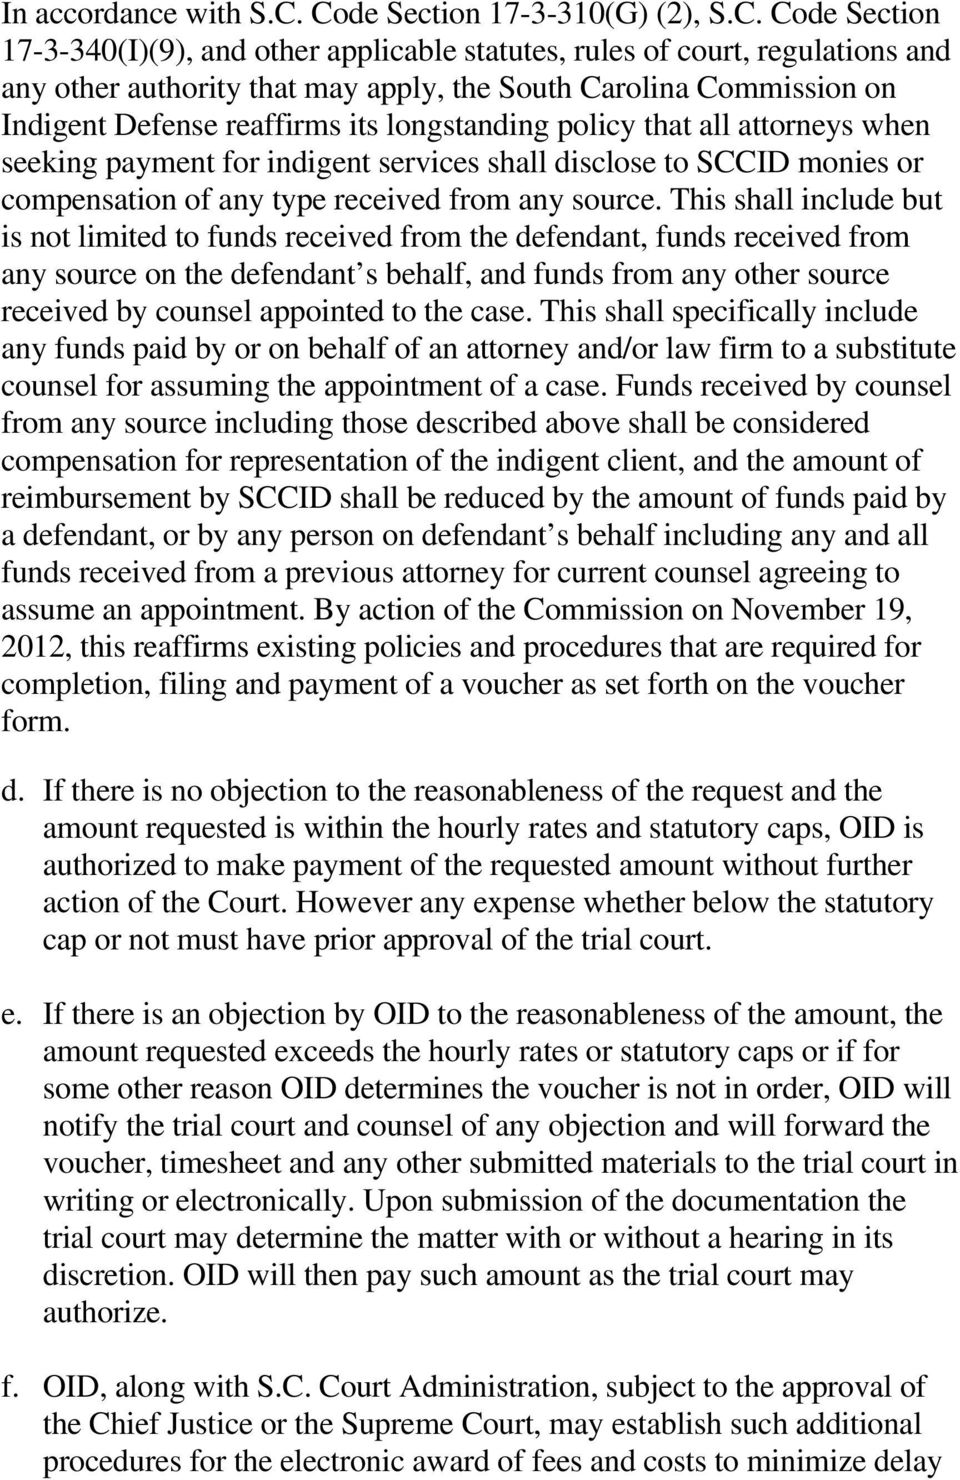 Indigent Defense reaffirms its longstanding policy that all attorneys when seeking payment for indigent services shall disclose to SCCID monies or compensation of any type received from any source.